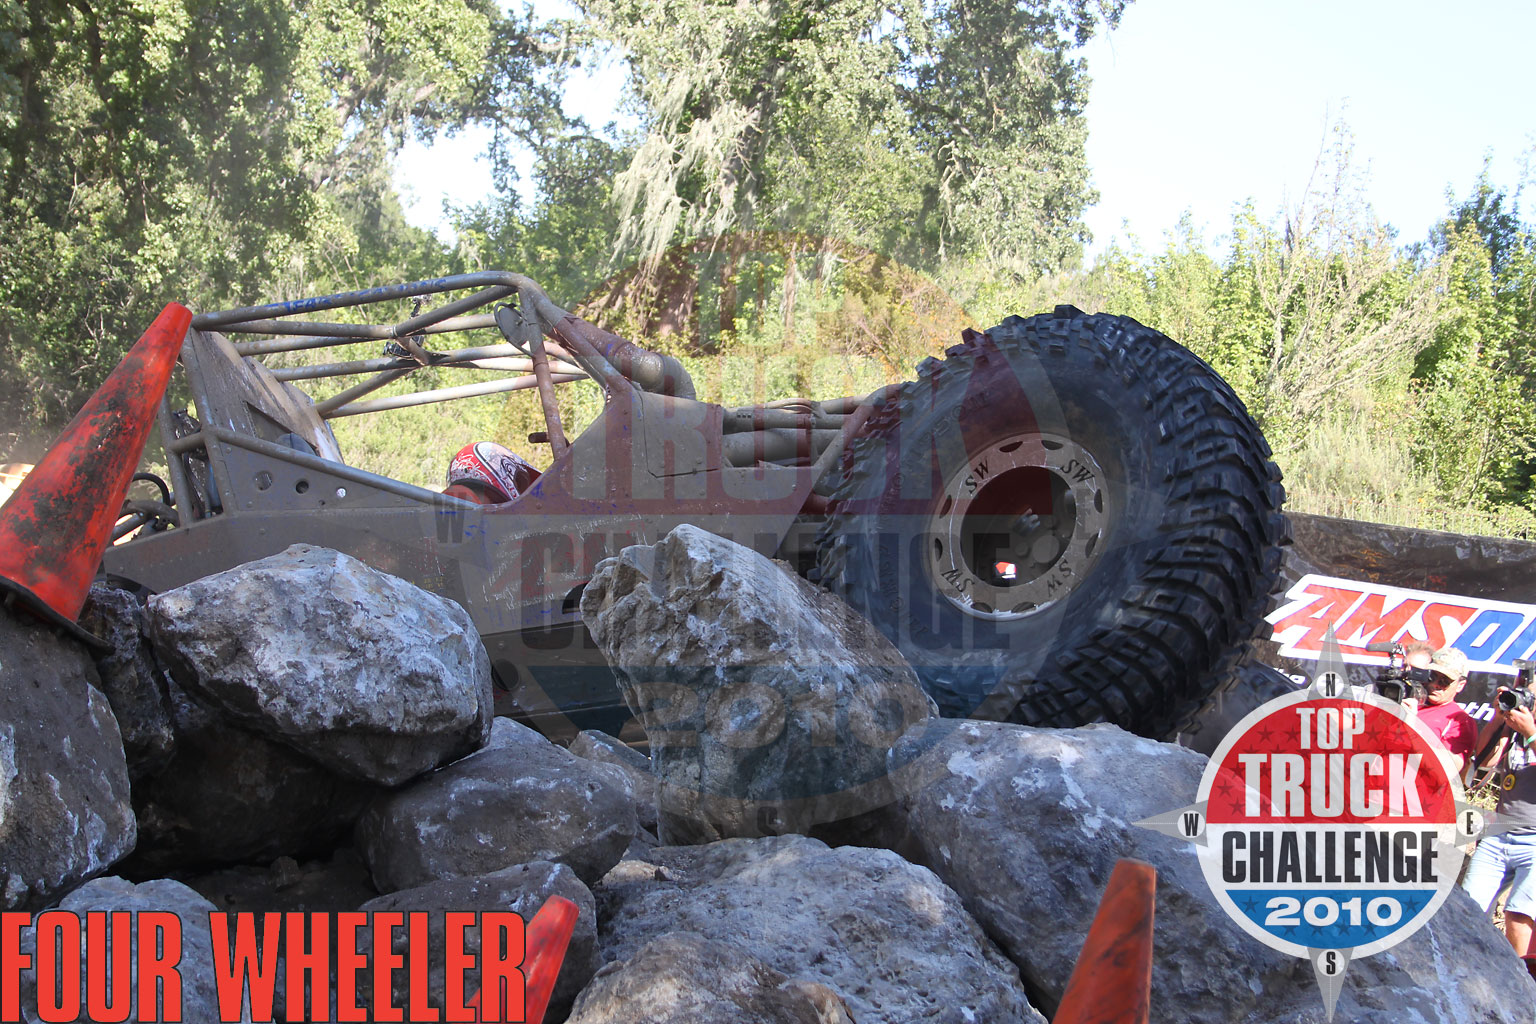 2010 Top Truck Challenge Mini Rubicon Joe Quichocho Tube Chassis Cj7 Buggy